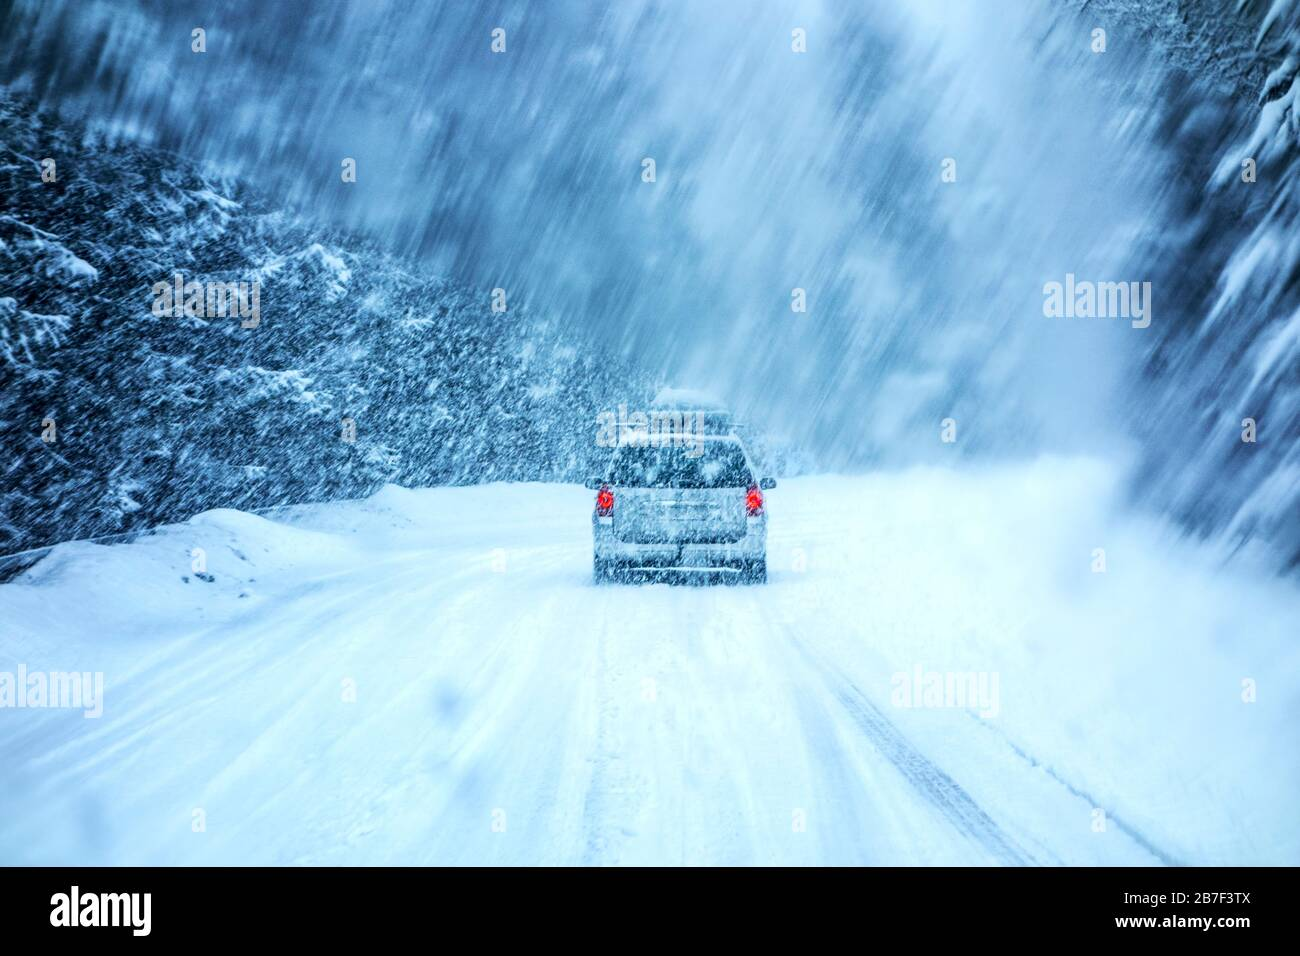 Car driving during winter snow storm taken through a windshield covered with blurred snowflakes. Stock Photo